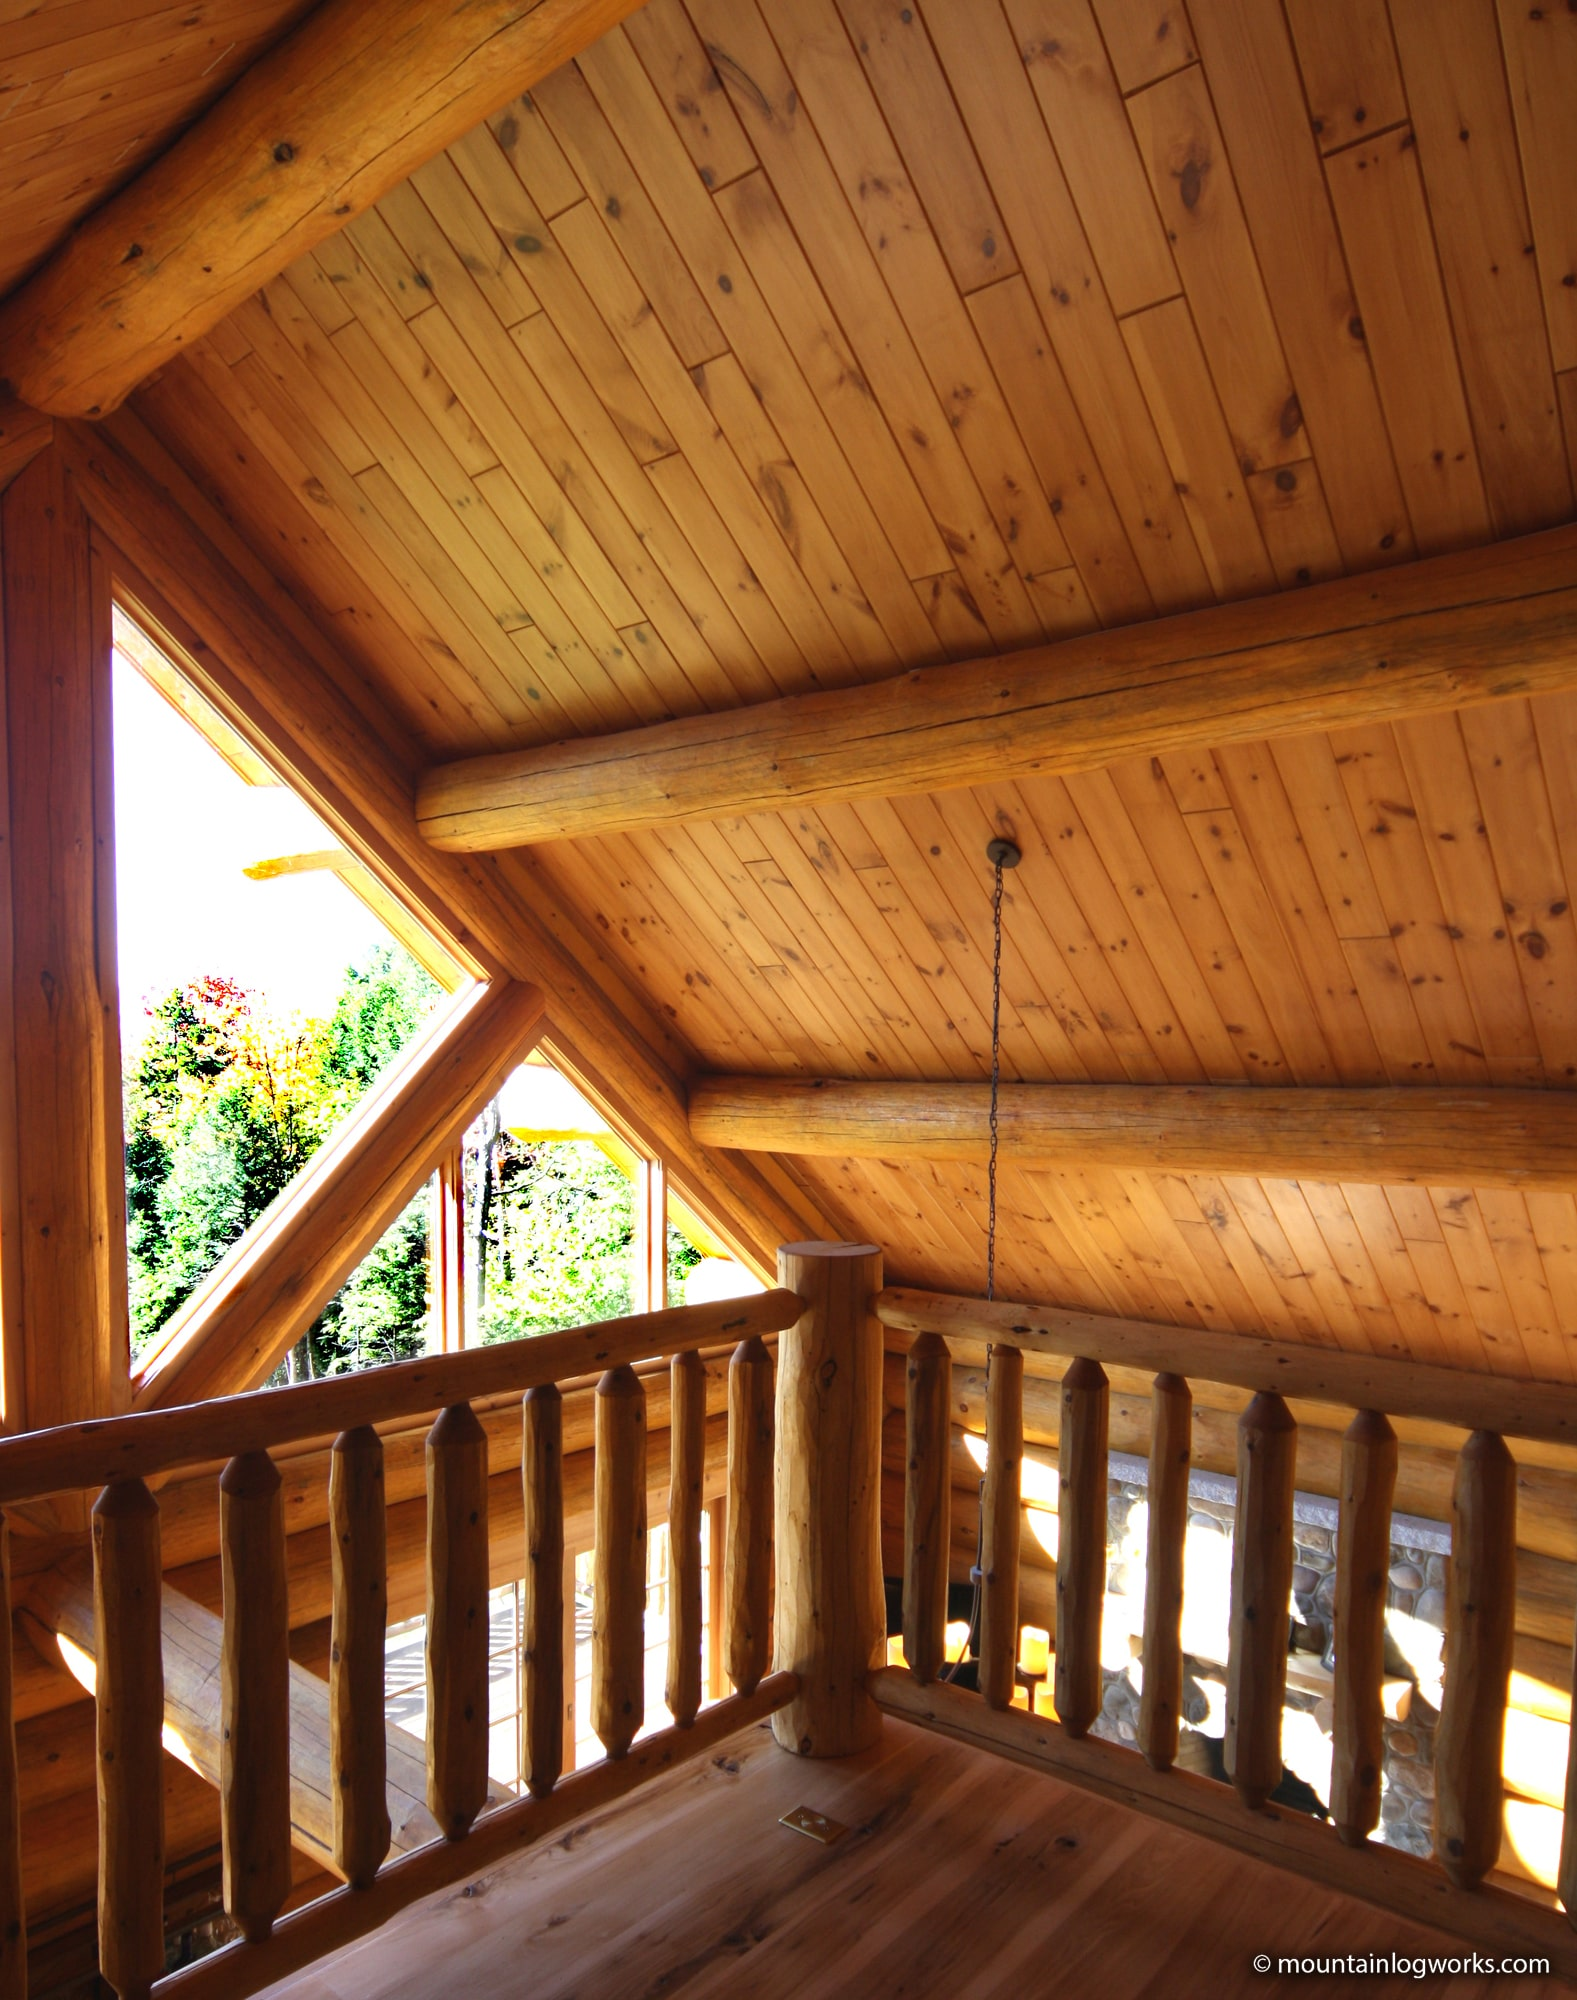 Cathedral ceiling in log cabin loft